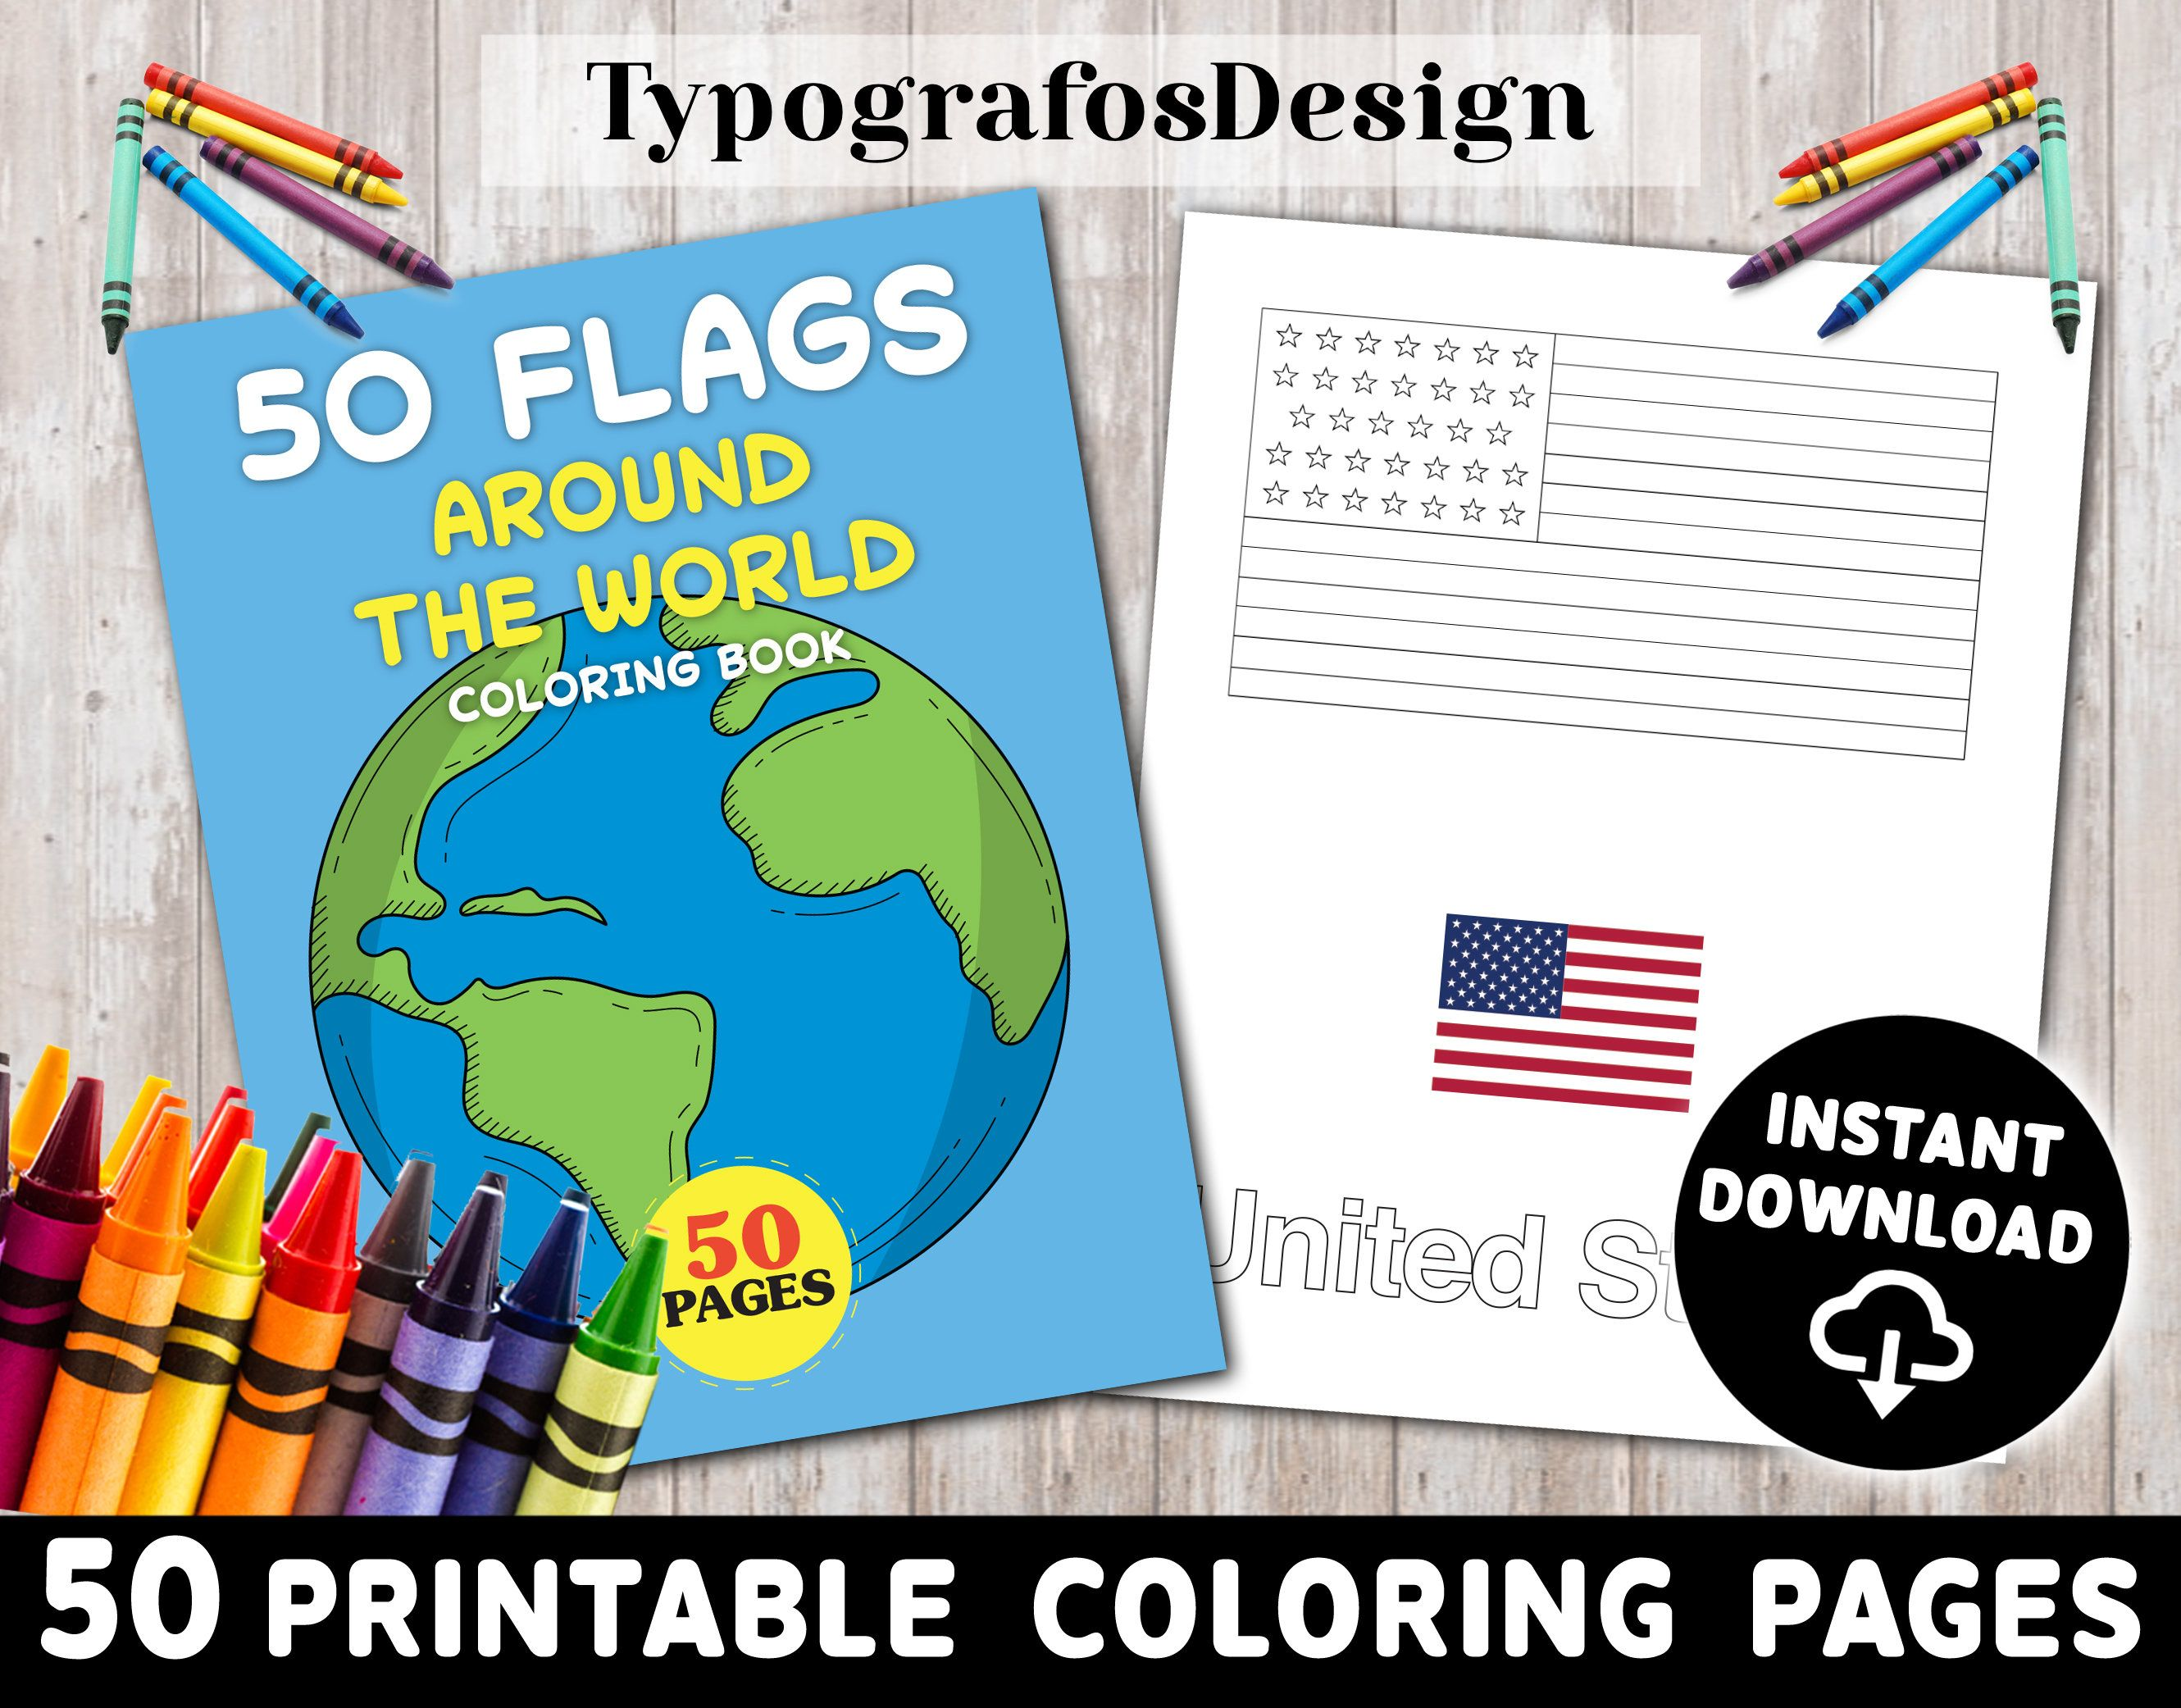 Flags Around The World Coloring Book Printable Book For Kids Etsy Birthday Coloring Pages Coloring Books Coloring Pages